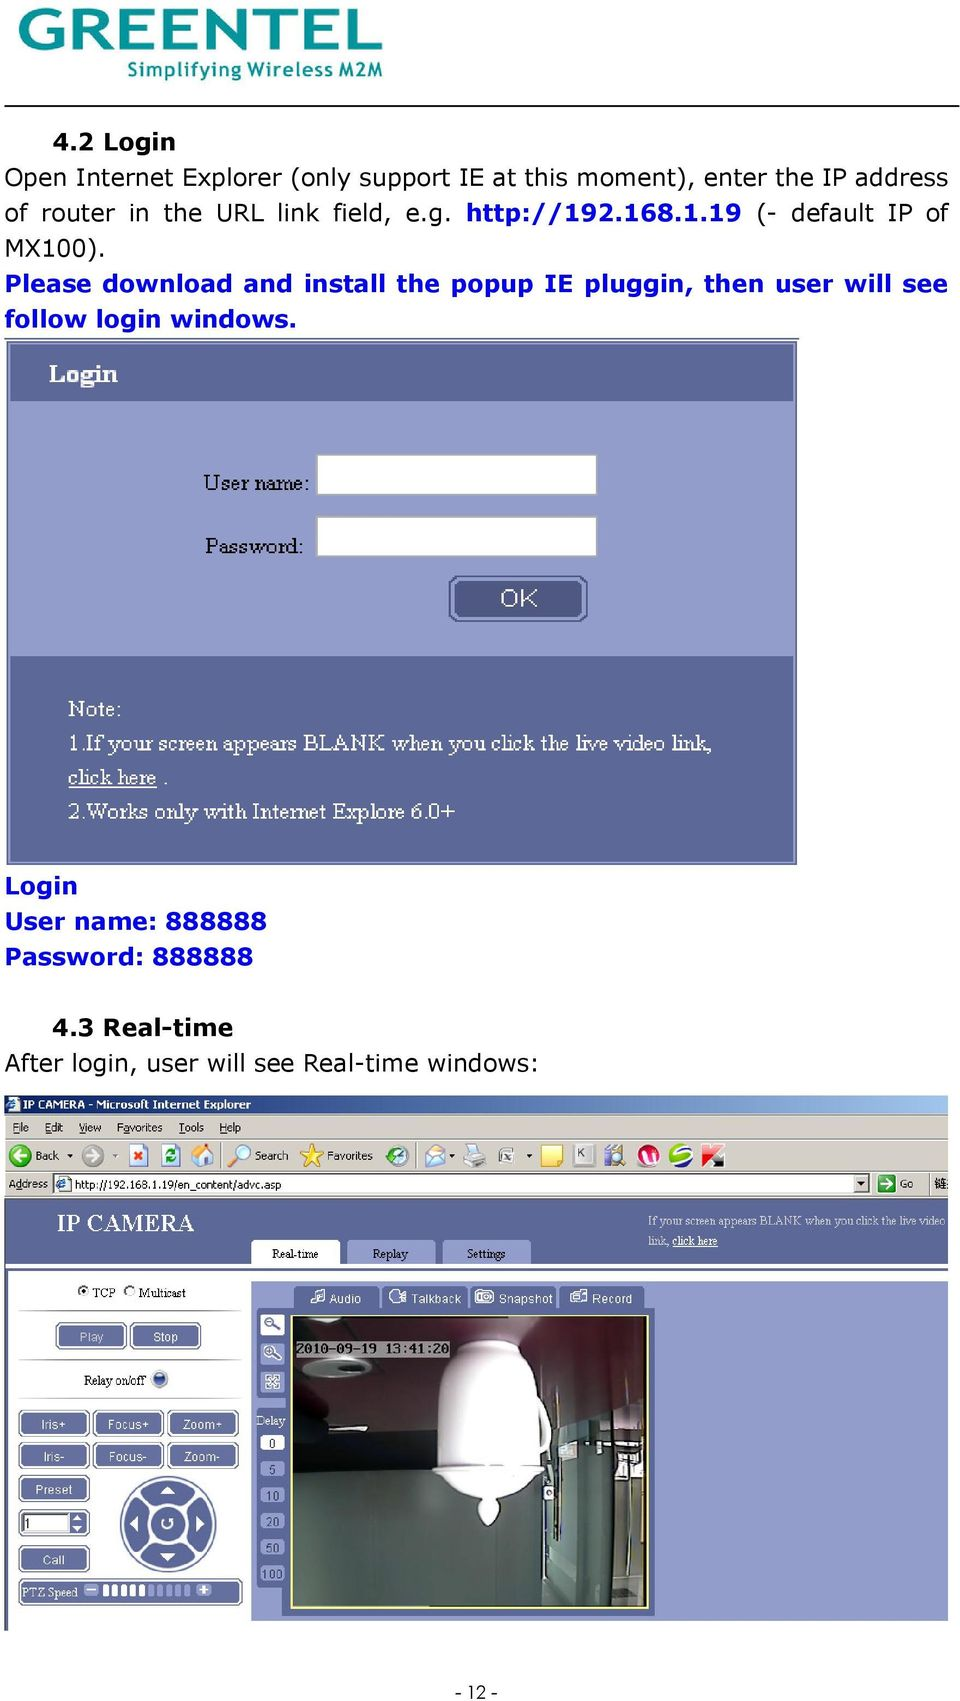 Please download and install the popup IE pluggin, then user will see follow login windows.